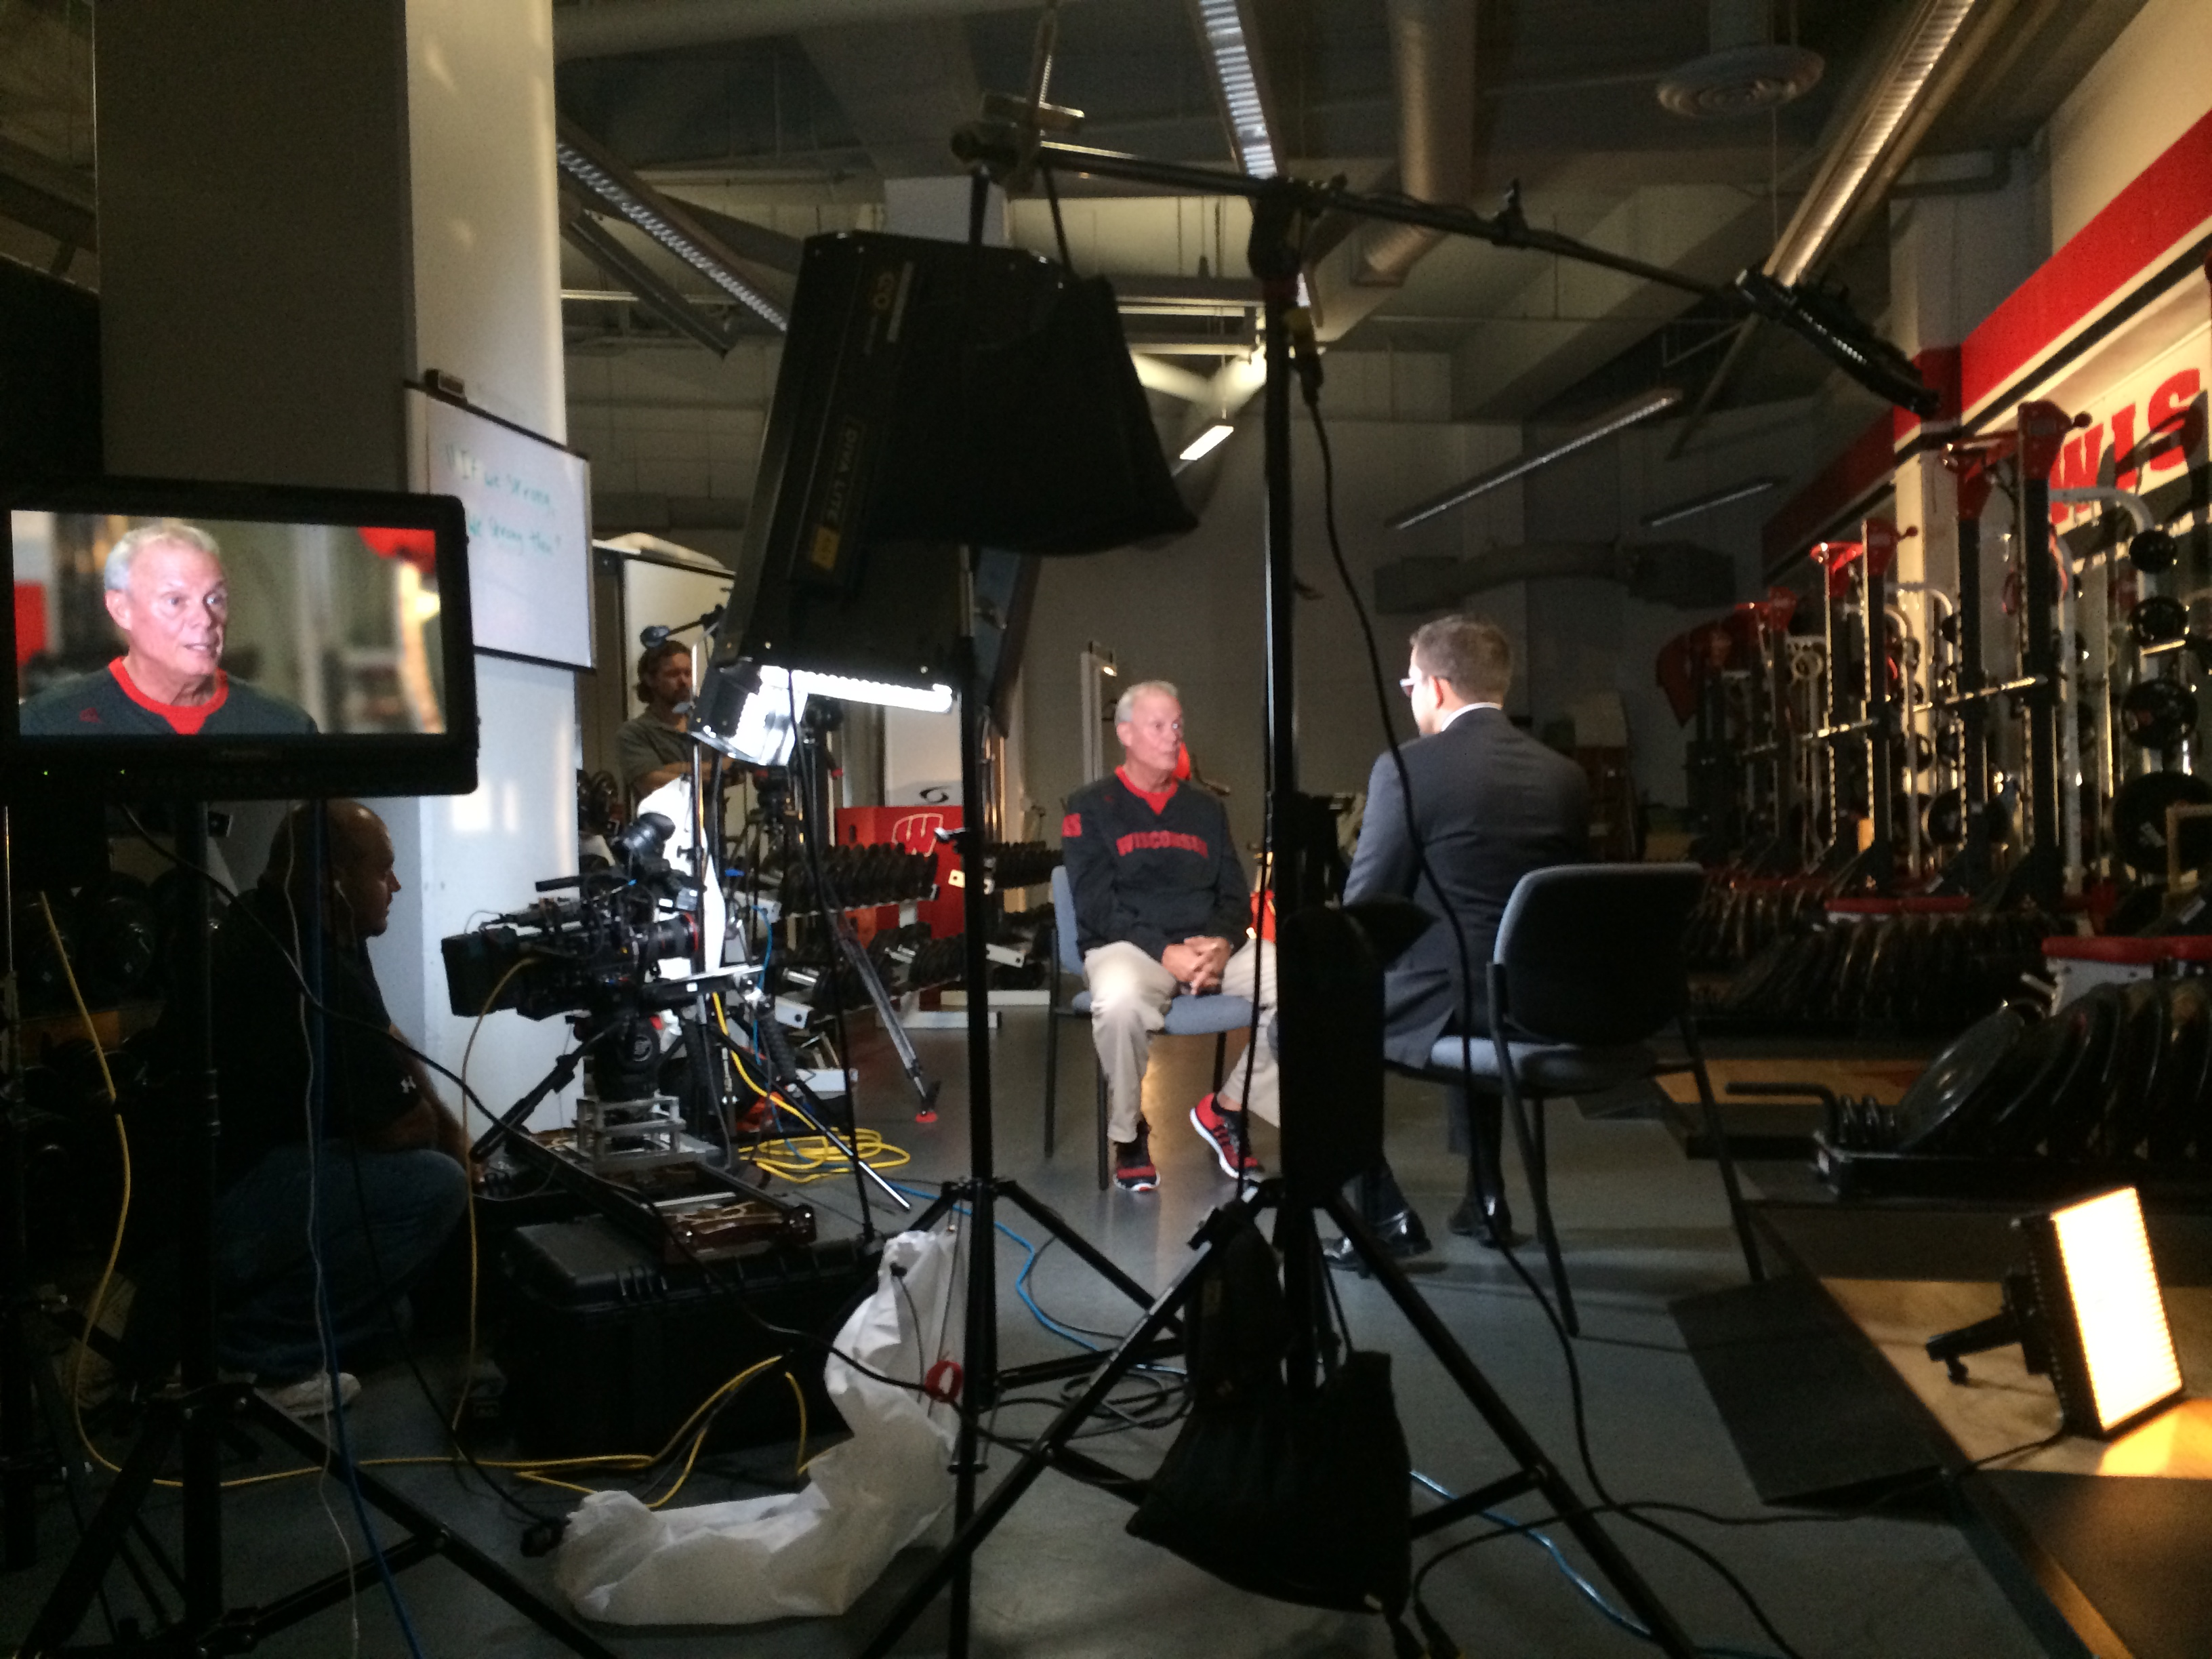 2014 09 23 15.42.34 Chicago Video Crew teams up for Fox Sports Features in the Midwest